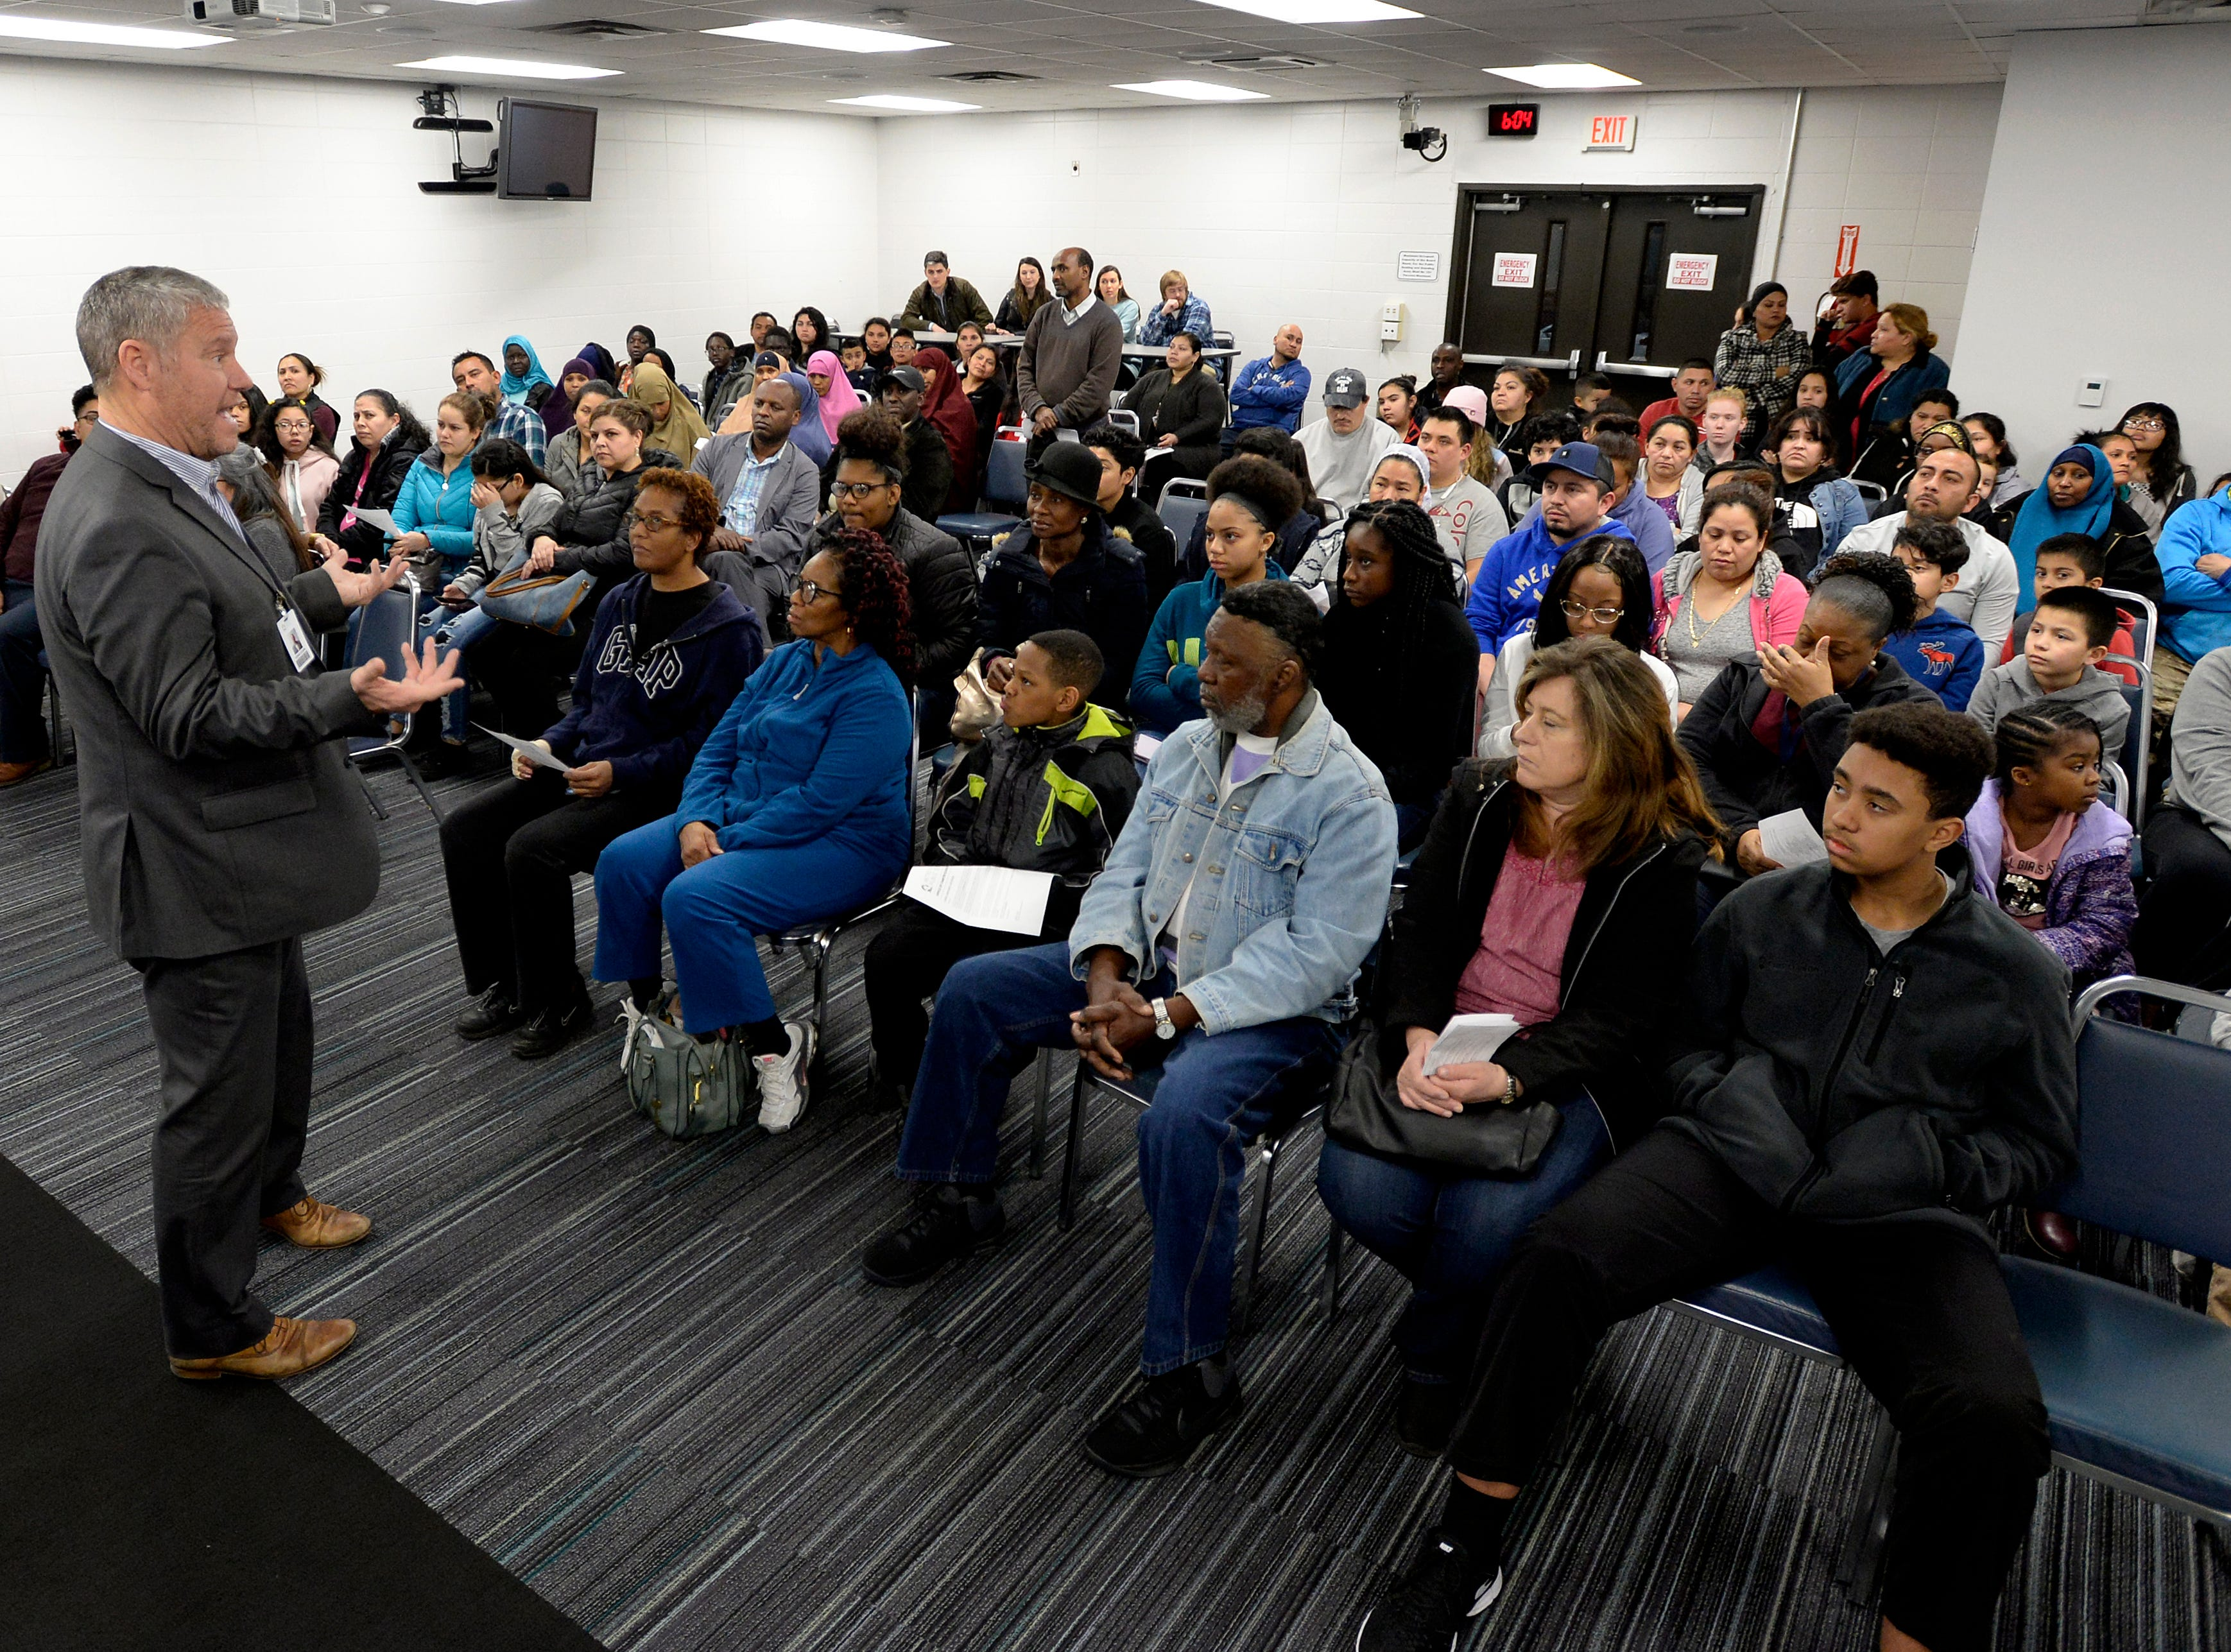 MNPS Executive Director of Charter Schools Dennis Queen answers questions during a parent meeting on Thursday, March 7, 2019 in Nashville, Tenn.